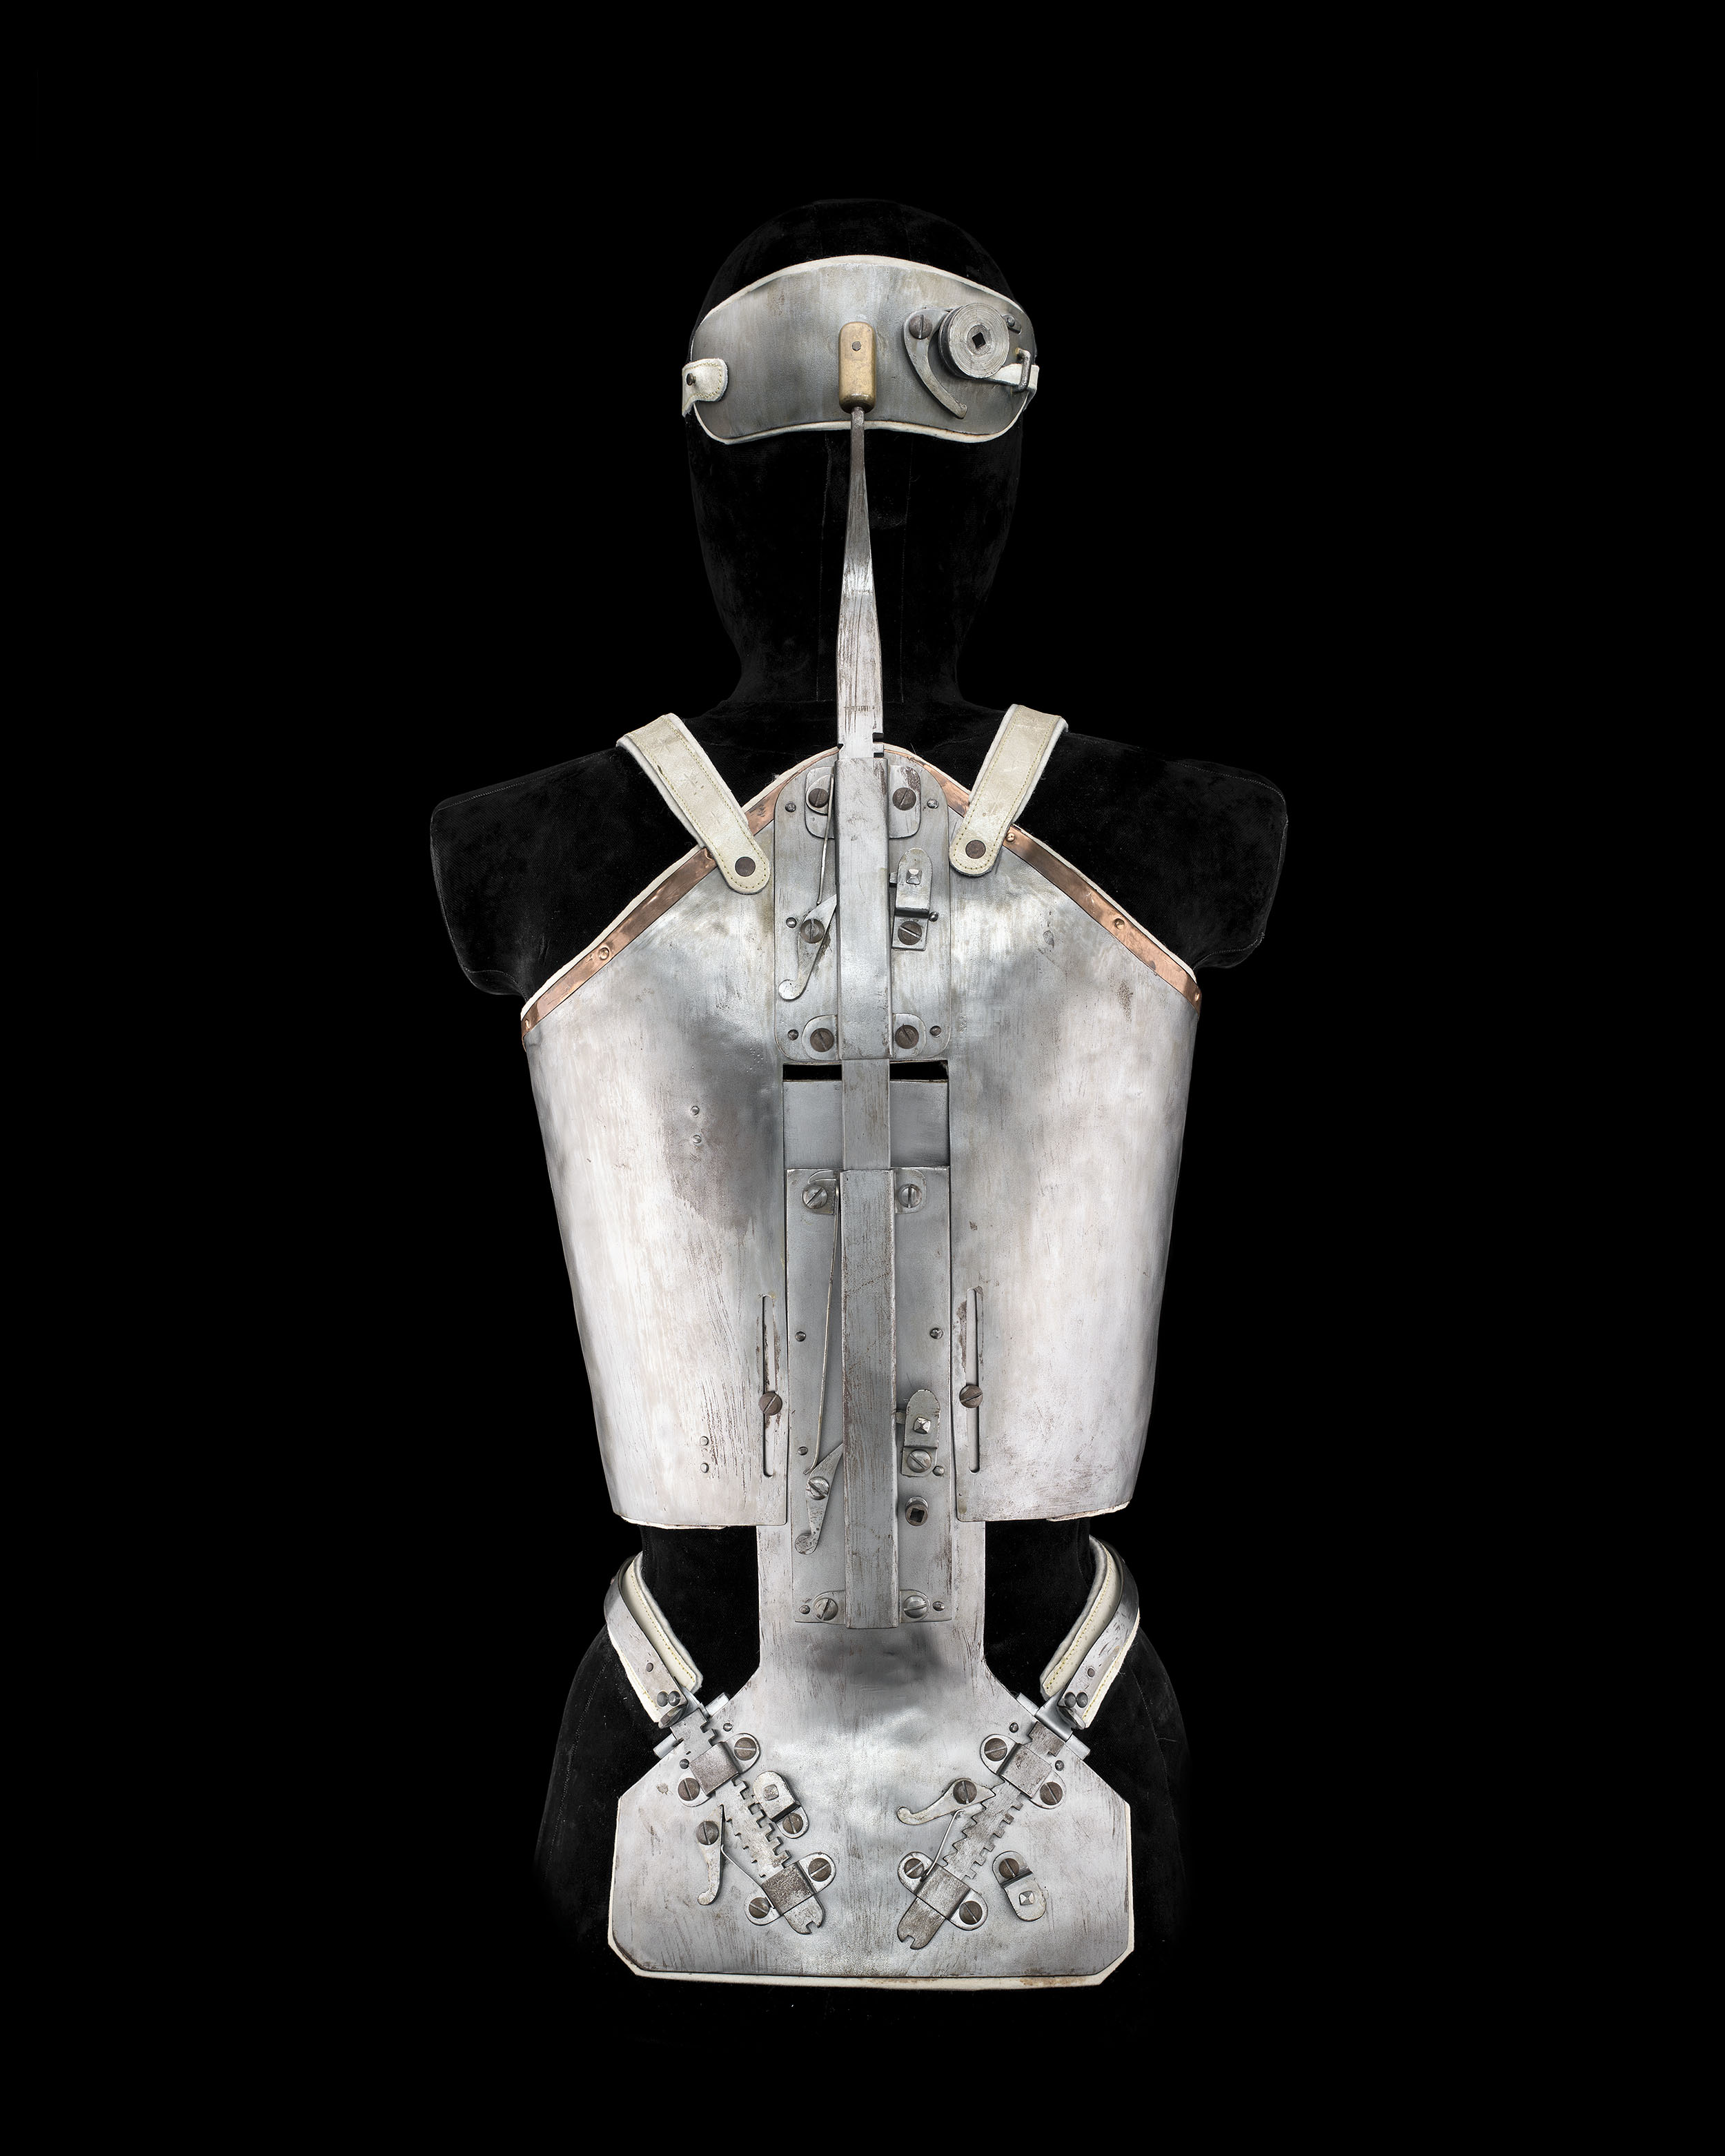 Considered one of the earliest modern prosthetists, Swiss physician Jean-André Venel (1740–1791) developed a corset for people with scoliosis, a curvature of the spine. The idea was to treat a malformation or disability. Technically, the corset is an orthotic device, which compensates for an absent or deficient function, as opposed to a prosthesis, which replaces a function. Orthotics are the forerunners of the exoskeleton, the development of which is accelerating for civilian and military uses.